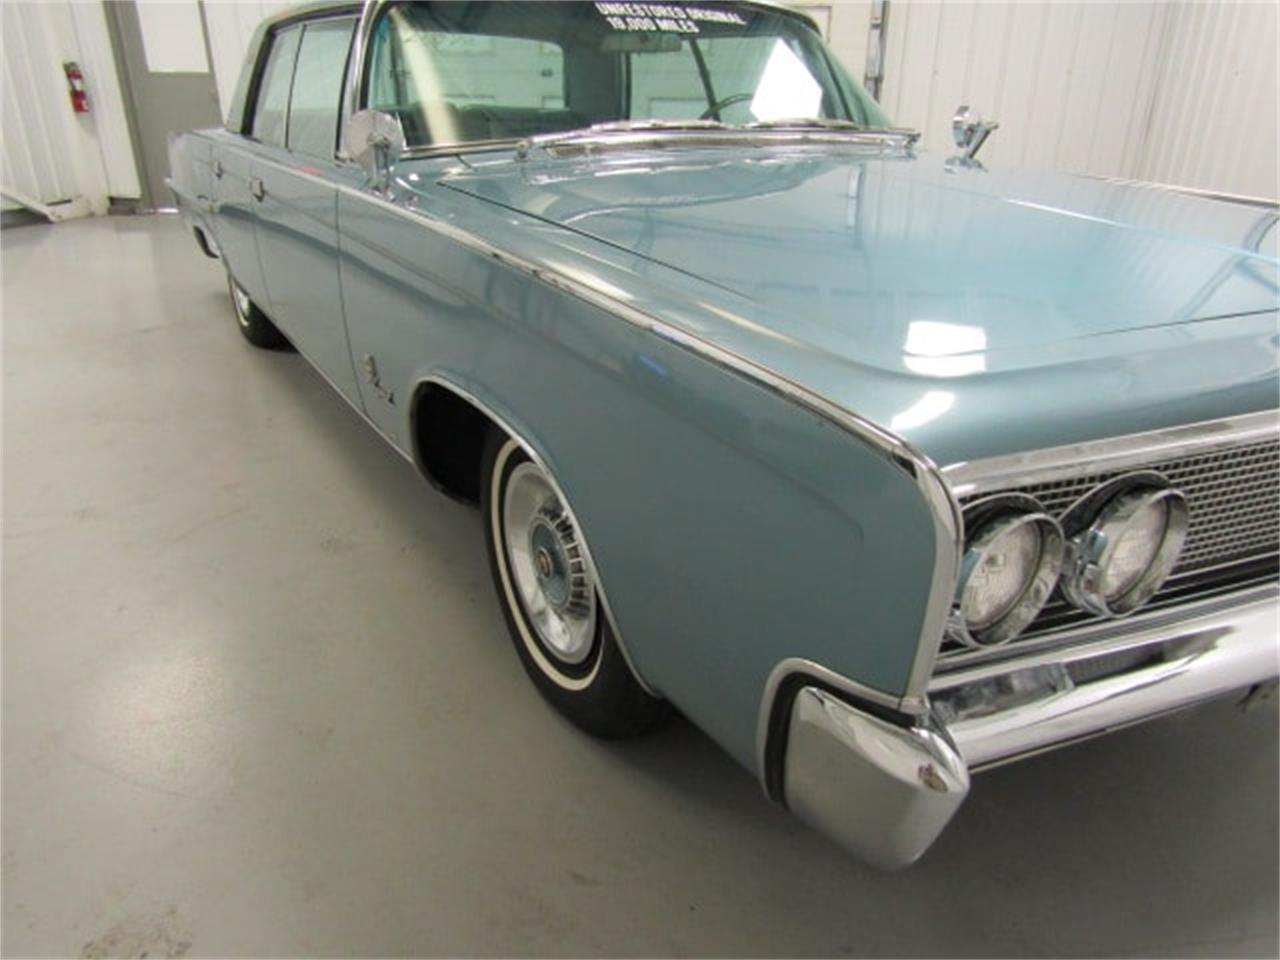 Large Picture of Classic '64 Chrysler Imperial Offered by Duncan Imports & Classic Cars - JLDR